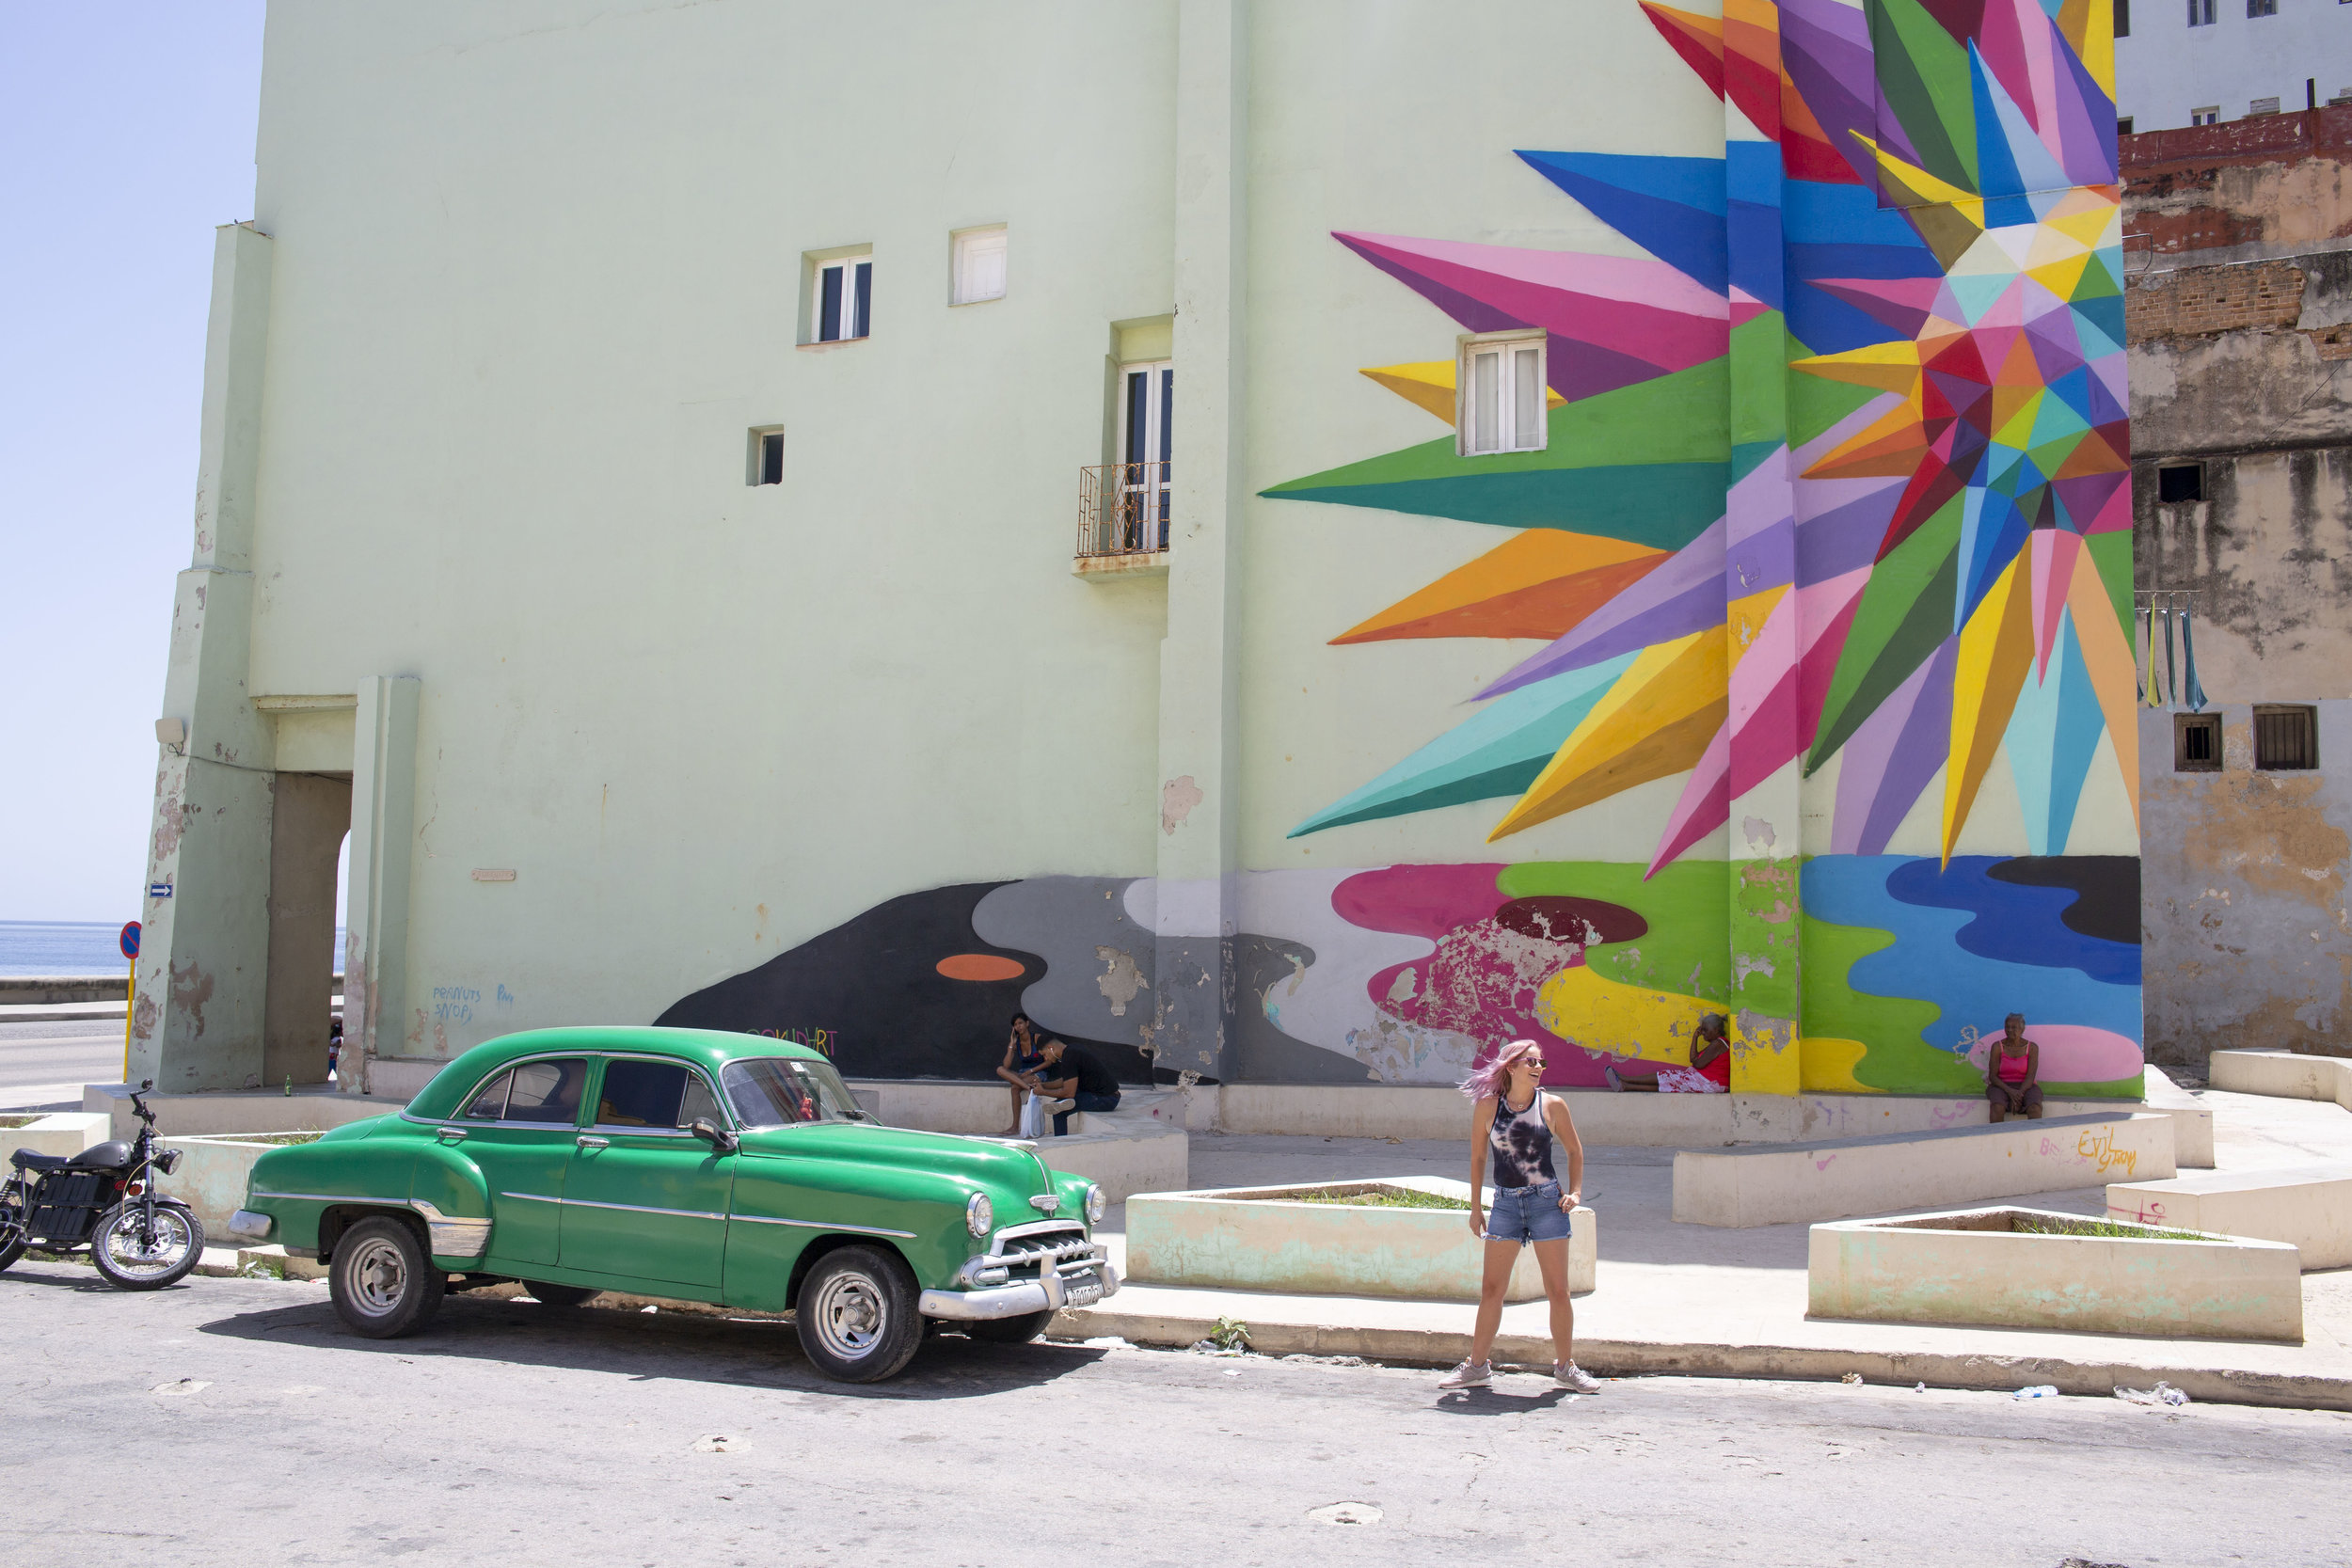 Can American's Go to Cuba? - Eleven facts and things you should know when traveling to Cuba on a U.S. Passport in 2019.